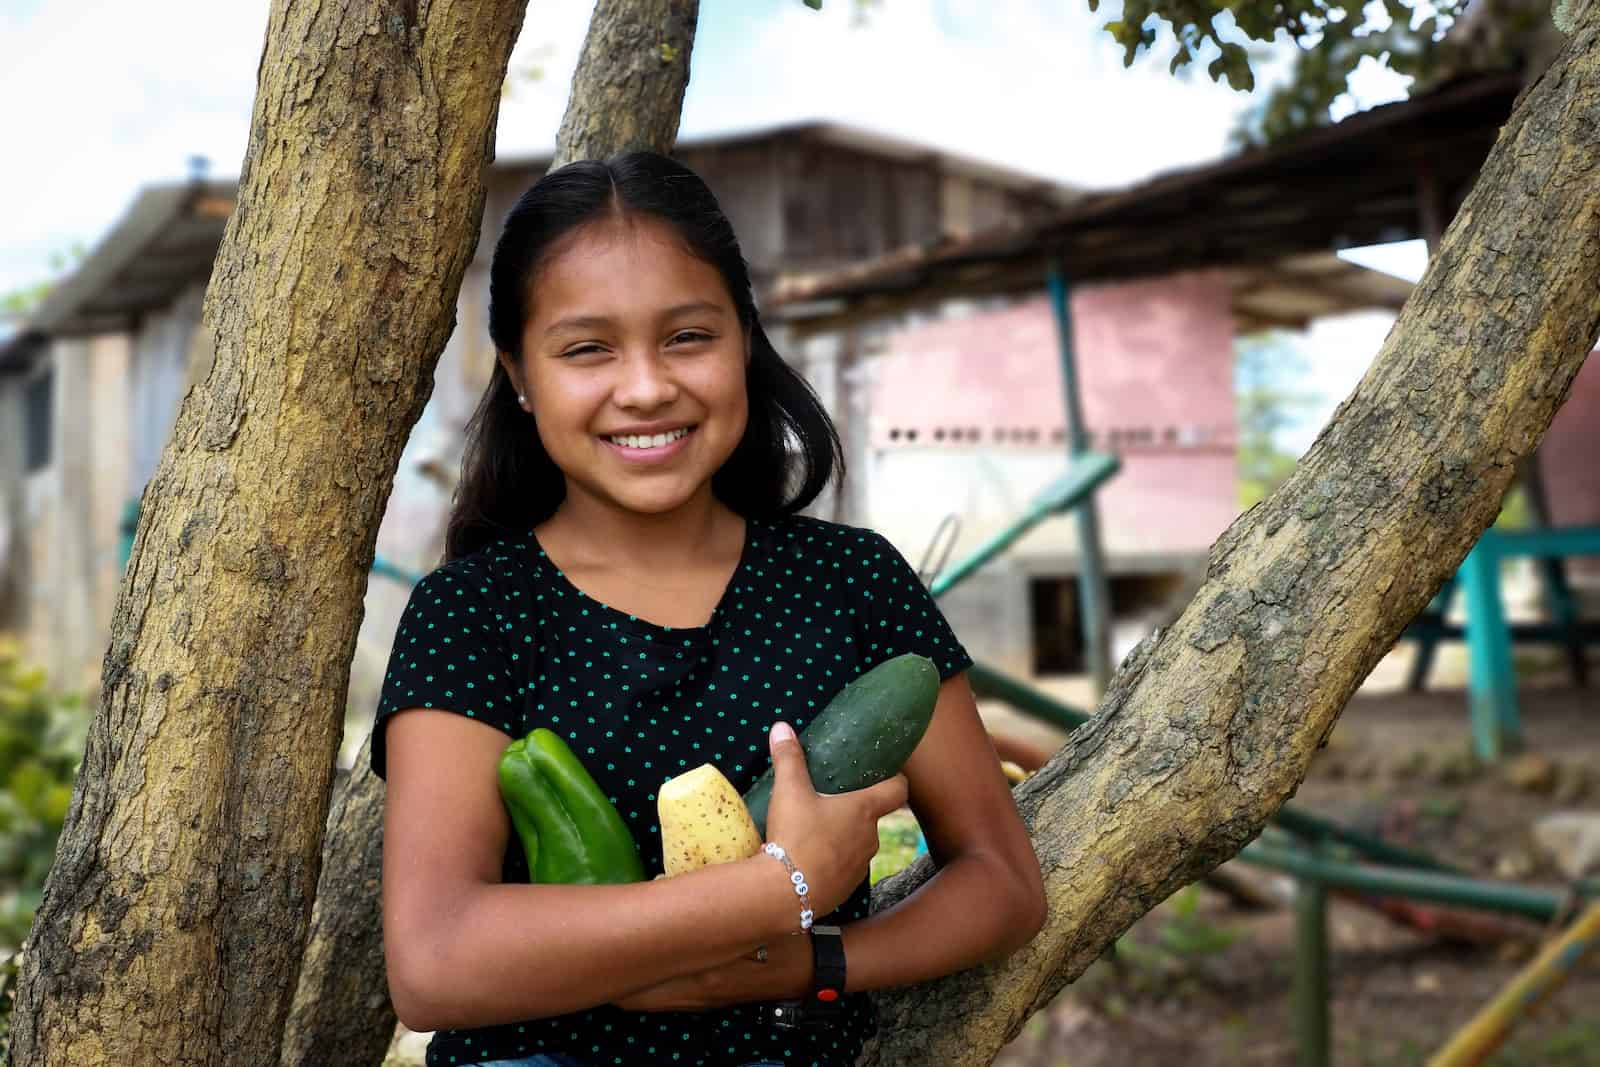 A girl leans against a tree, holding vegetables.